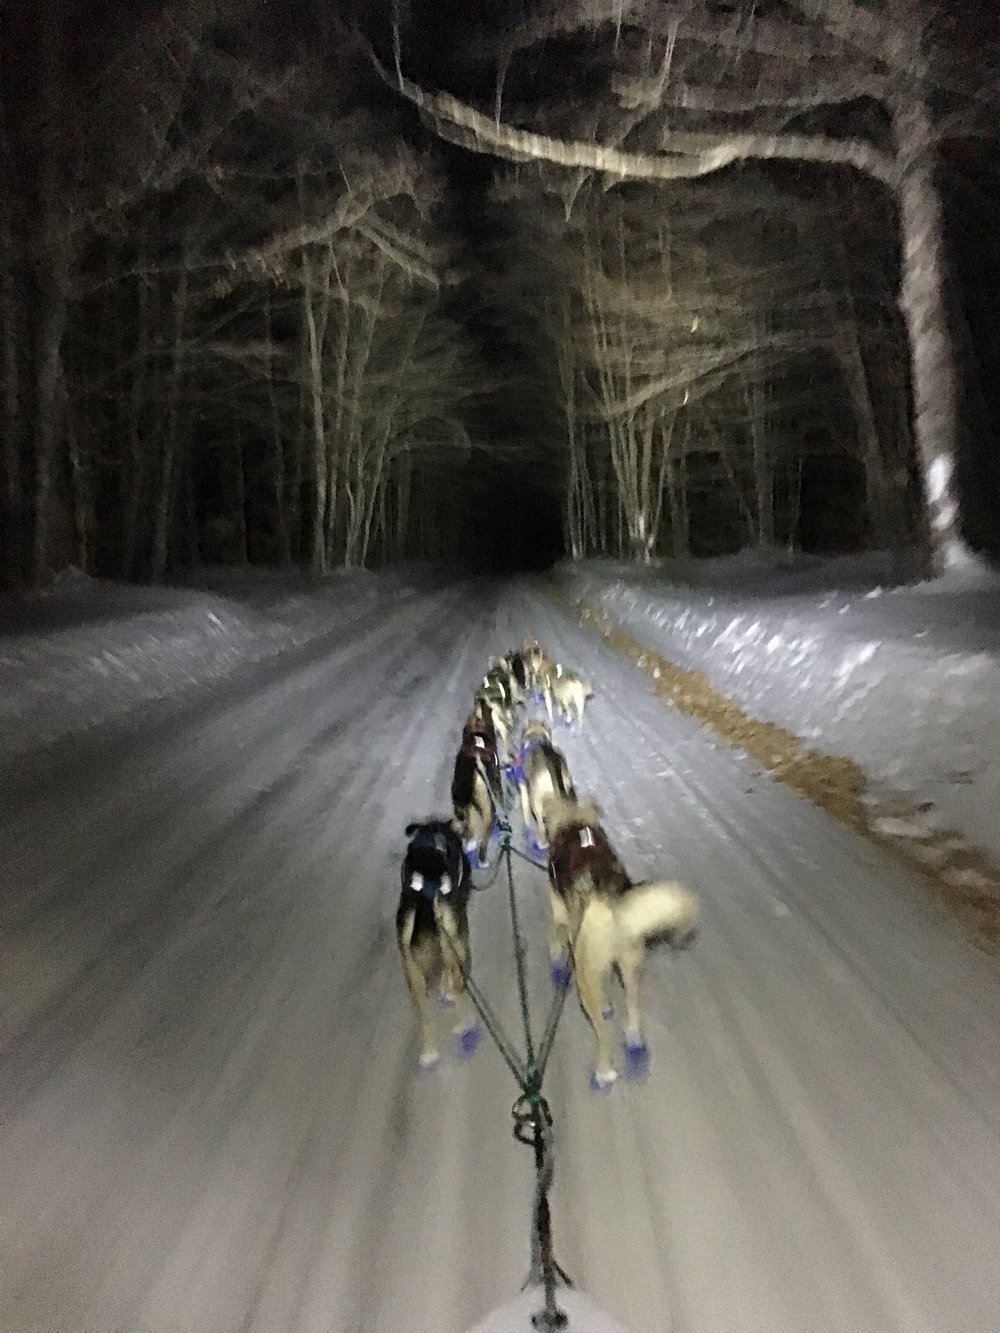 Blurry nighttime plowed road shot, on the leg to wetmore. ariel in single lead.